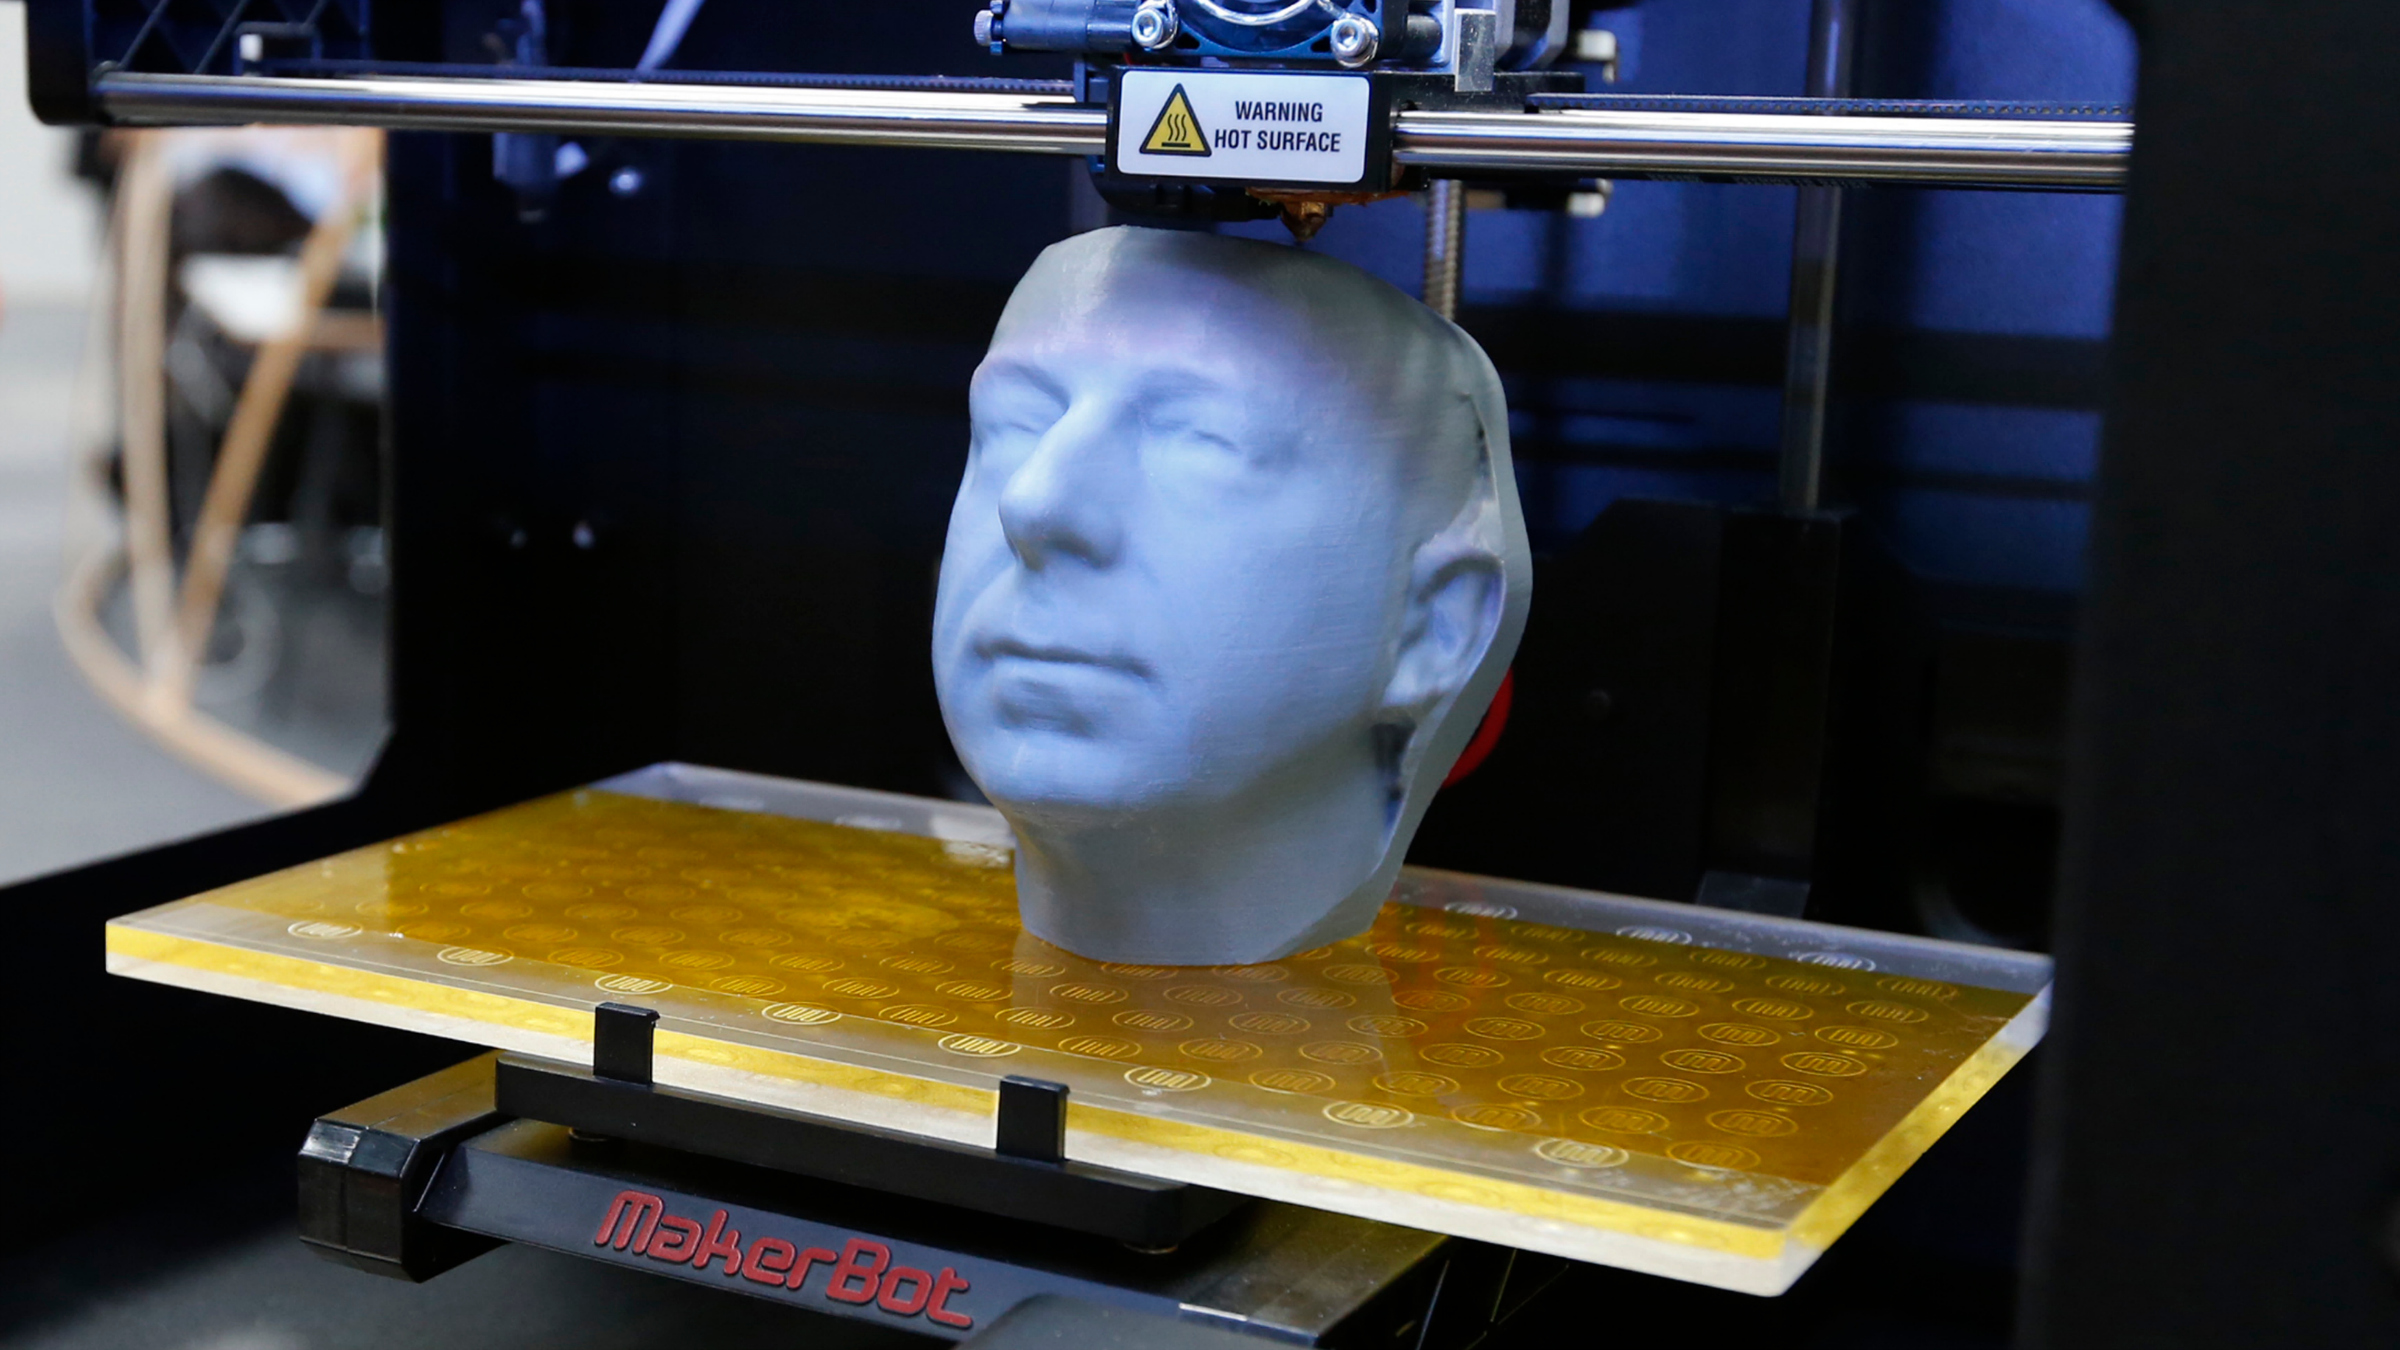 With 3D printing, you'll be able to replicate the world's famous